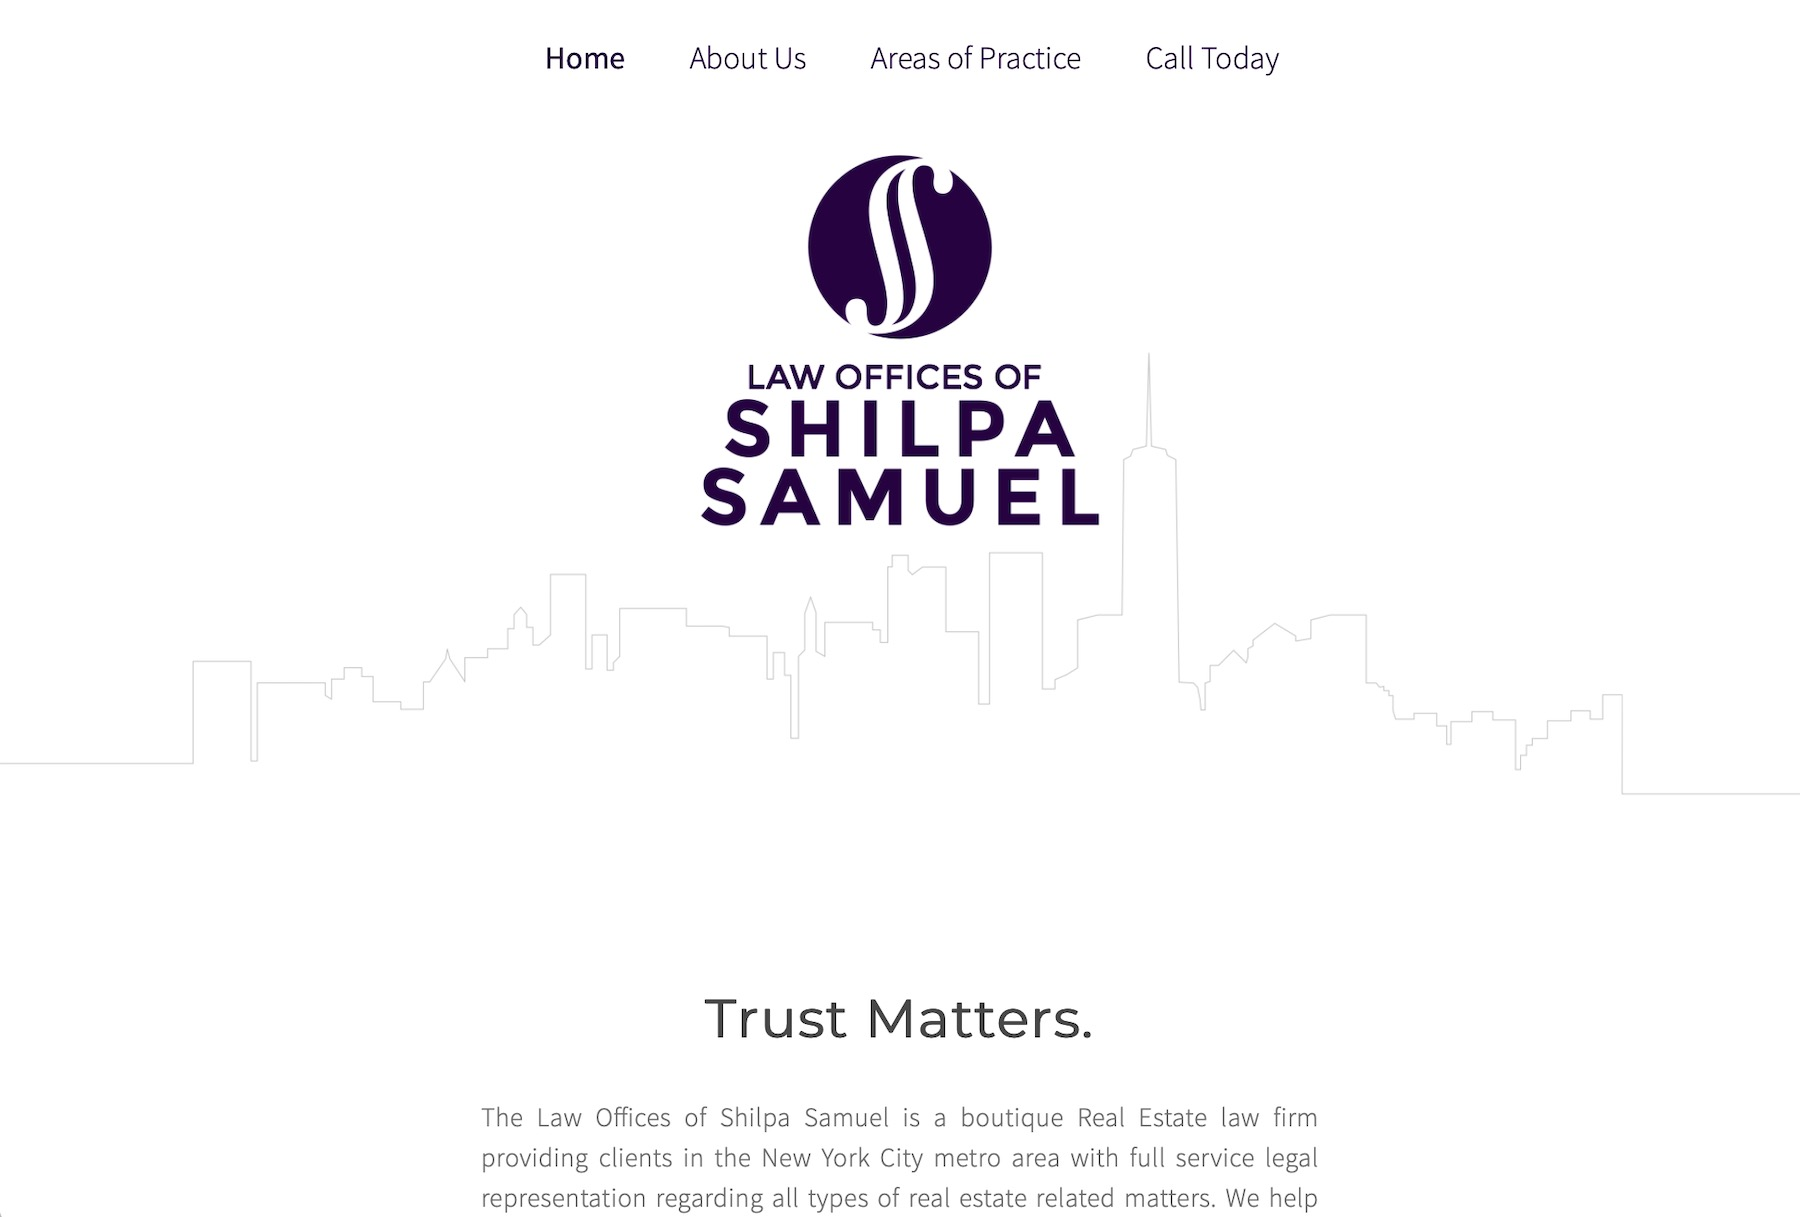 The Law Offices of Shilpa Samuel